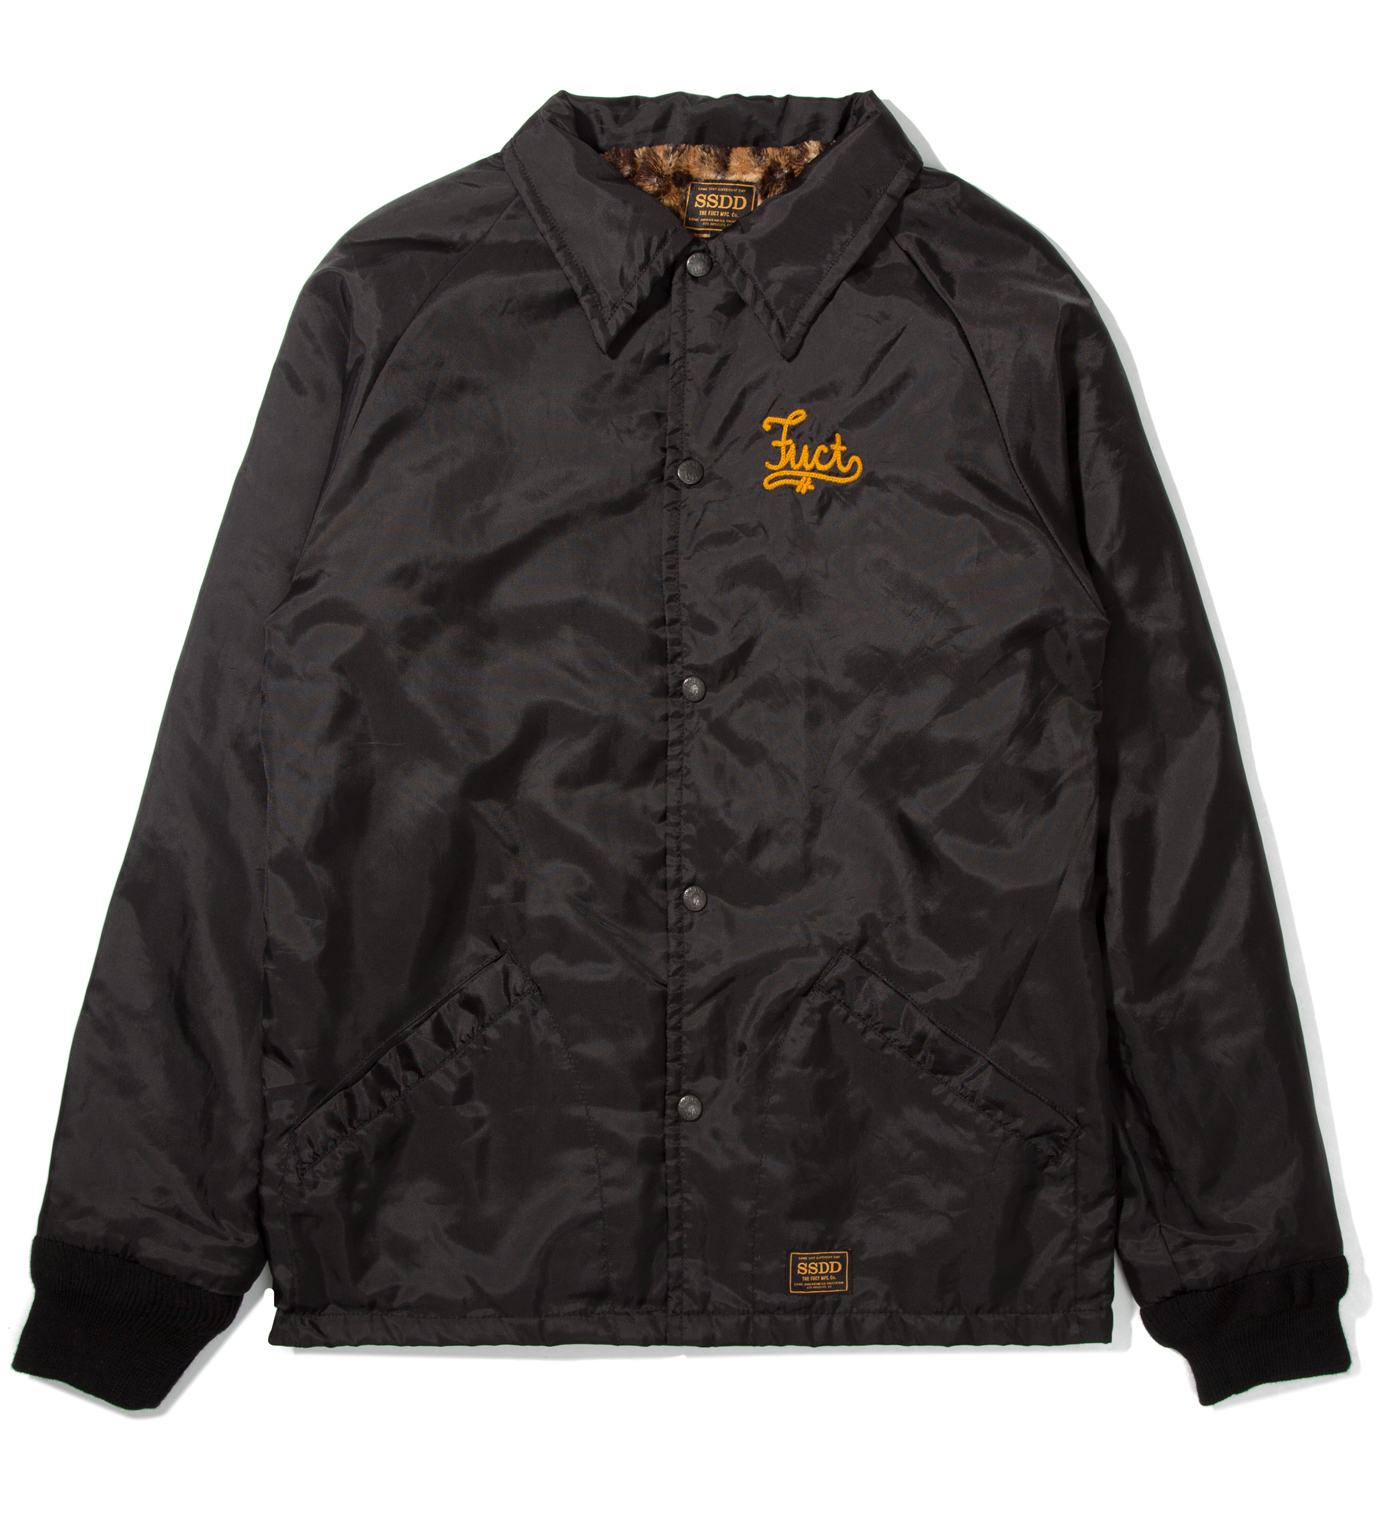 FUCT SSDD Black FUCT Co. Windbreaker